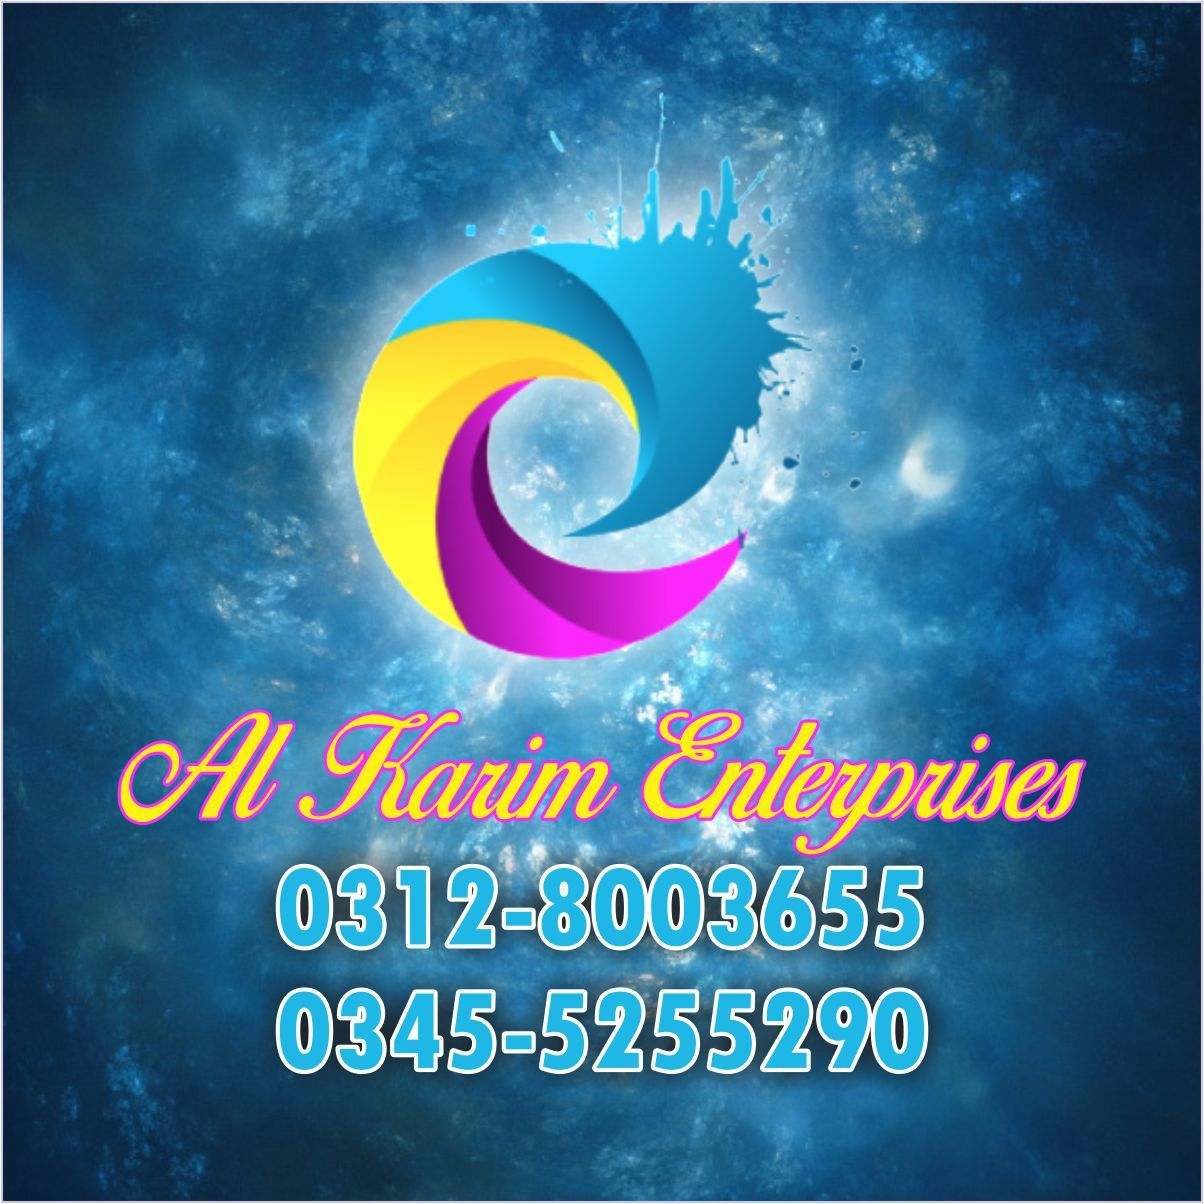 Al karim Enterprieses Blue Area Islamabad Printing and Property Company